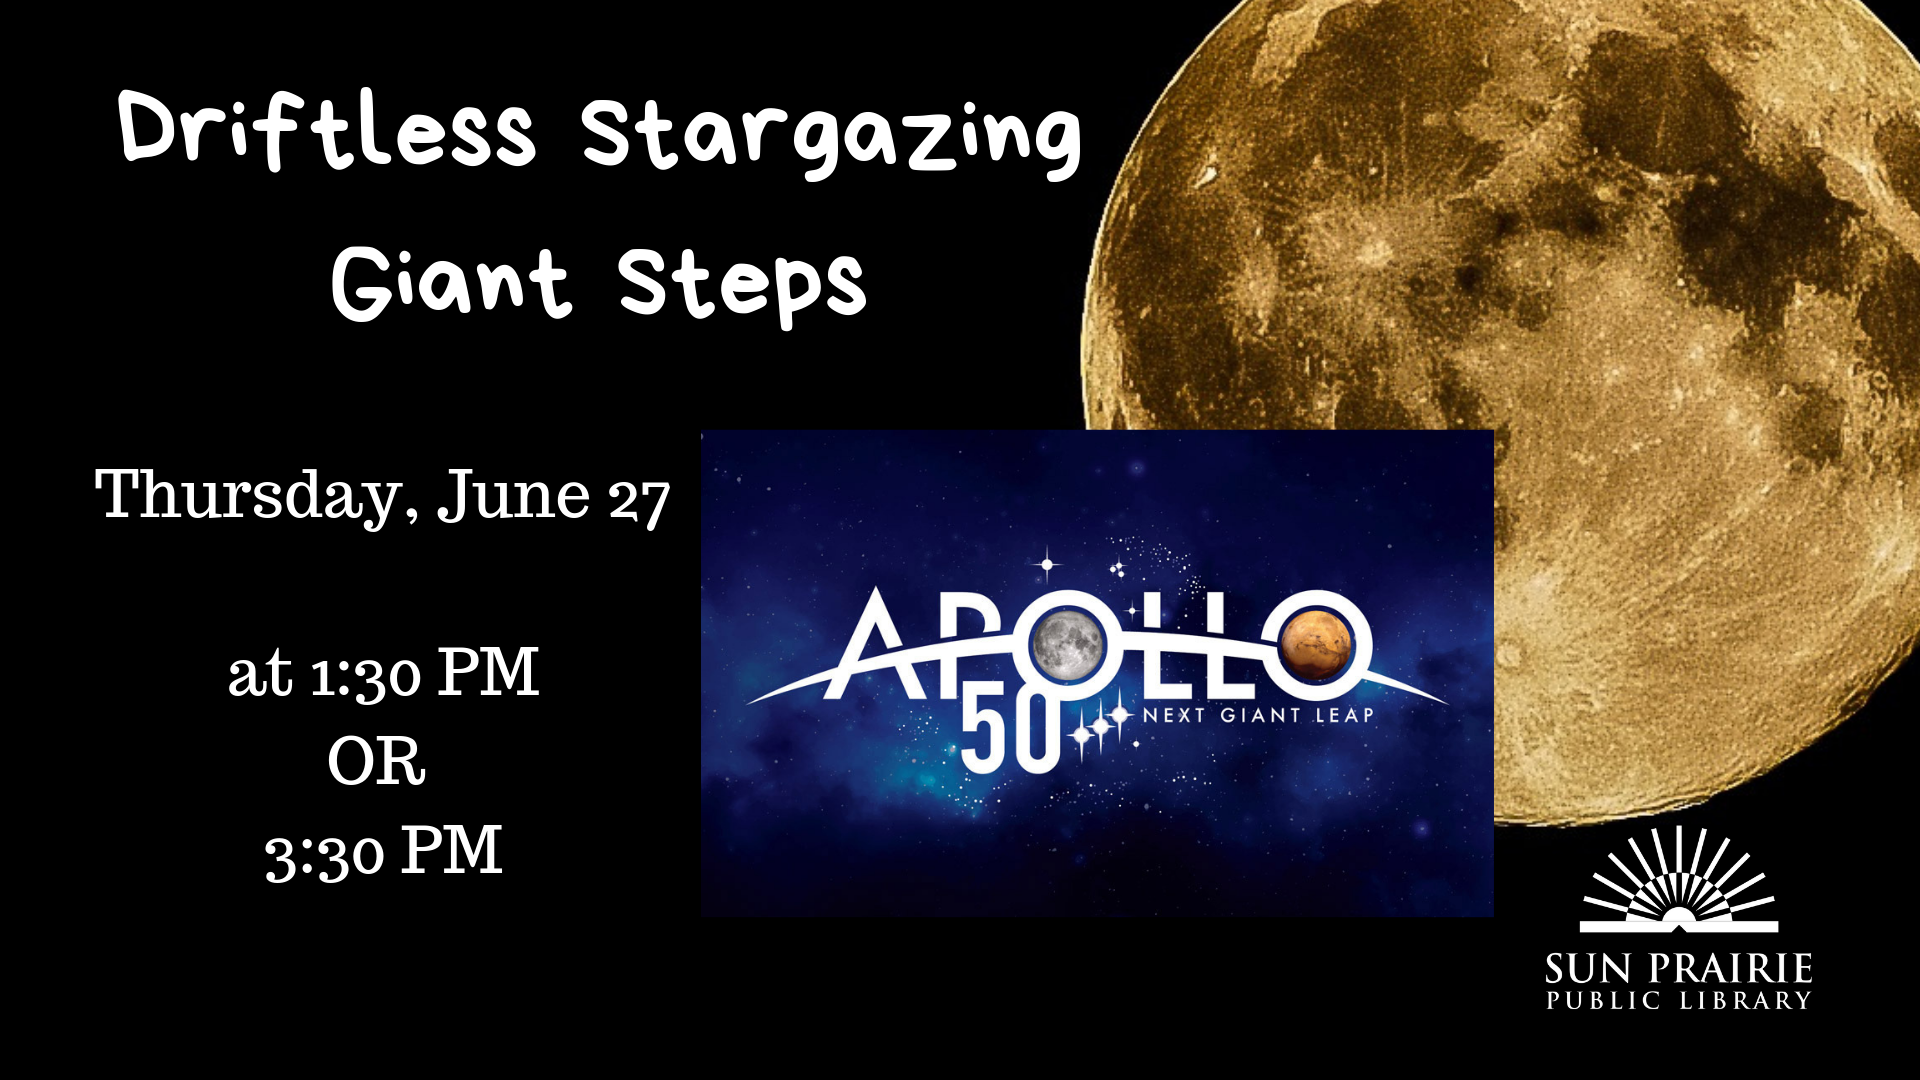 Driftless Stargazing: Giant Steps, Apollo 50th Aniversary image